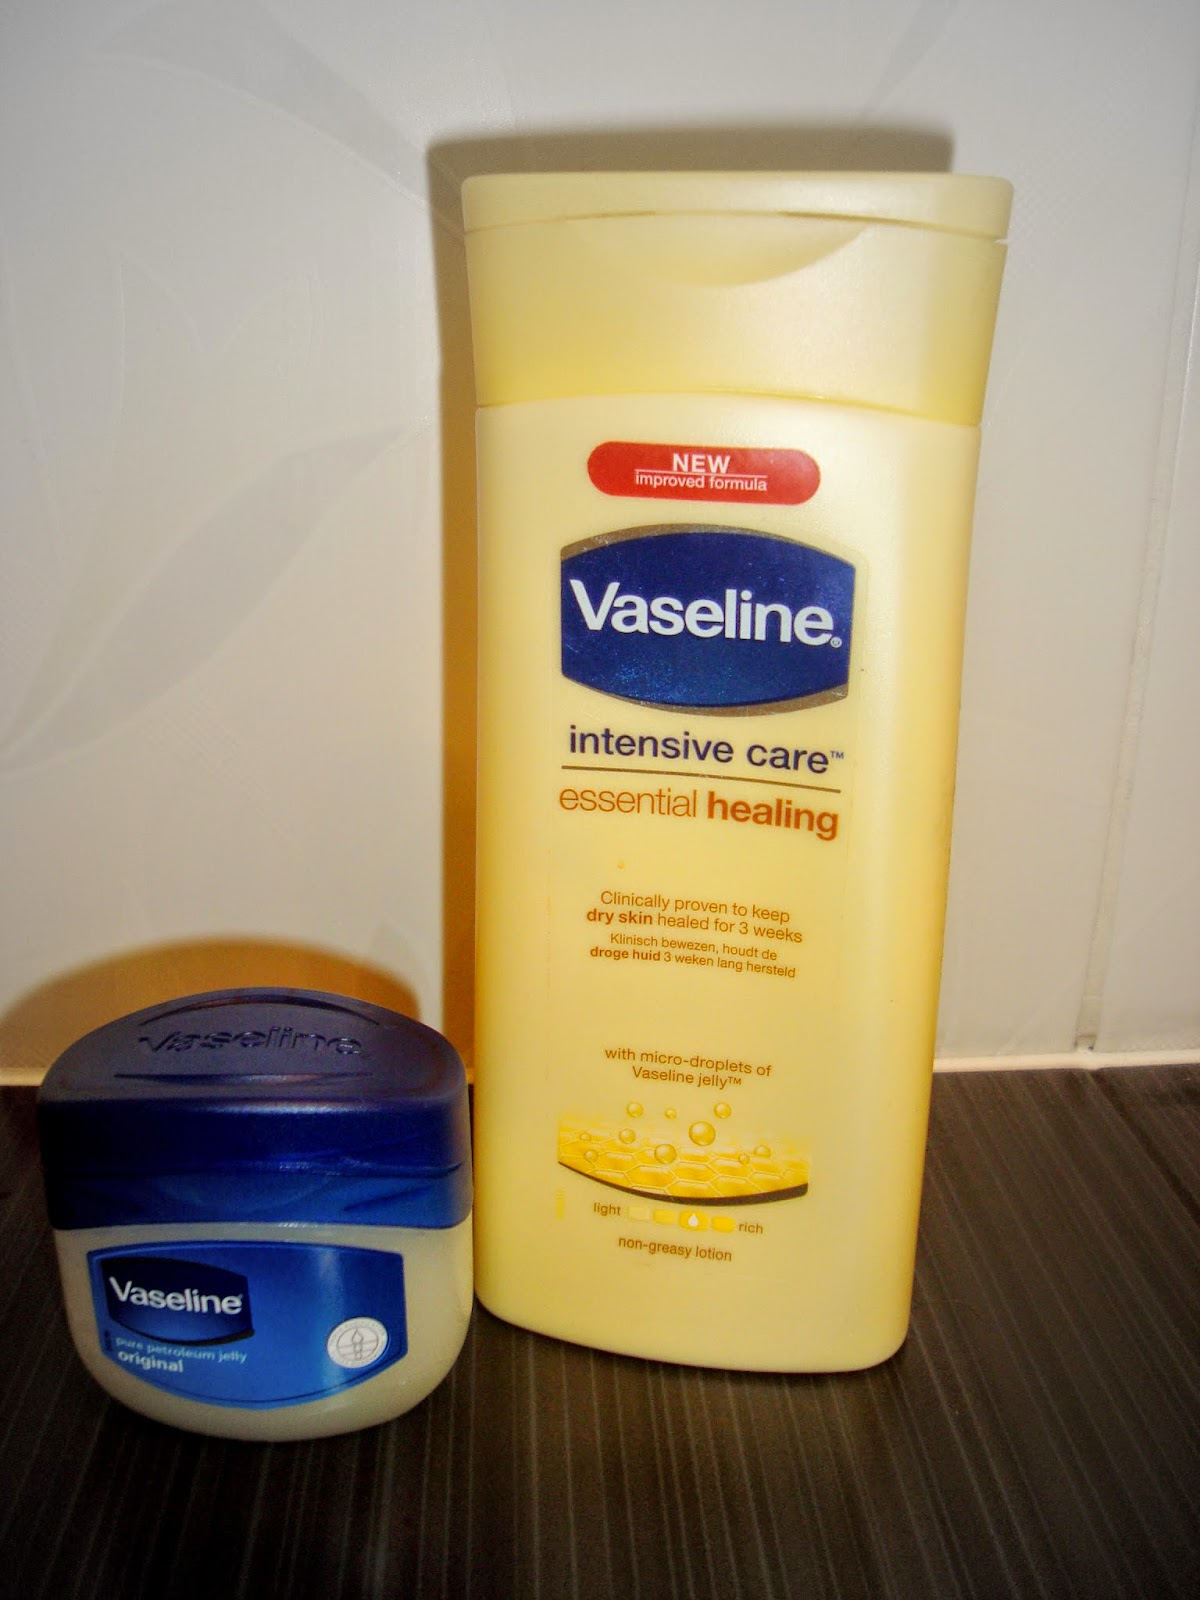 Vaseline - Pure petroleum jelly + Intensive care essential healing